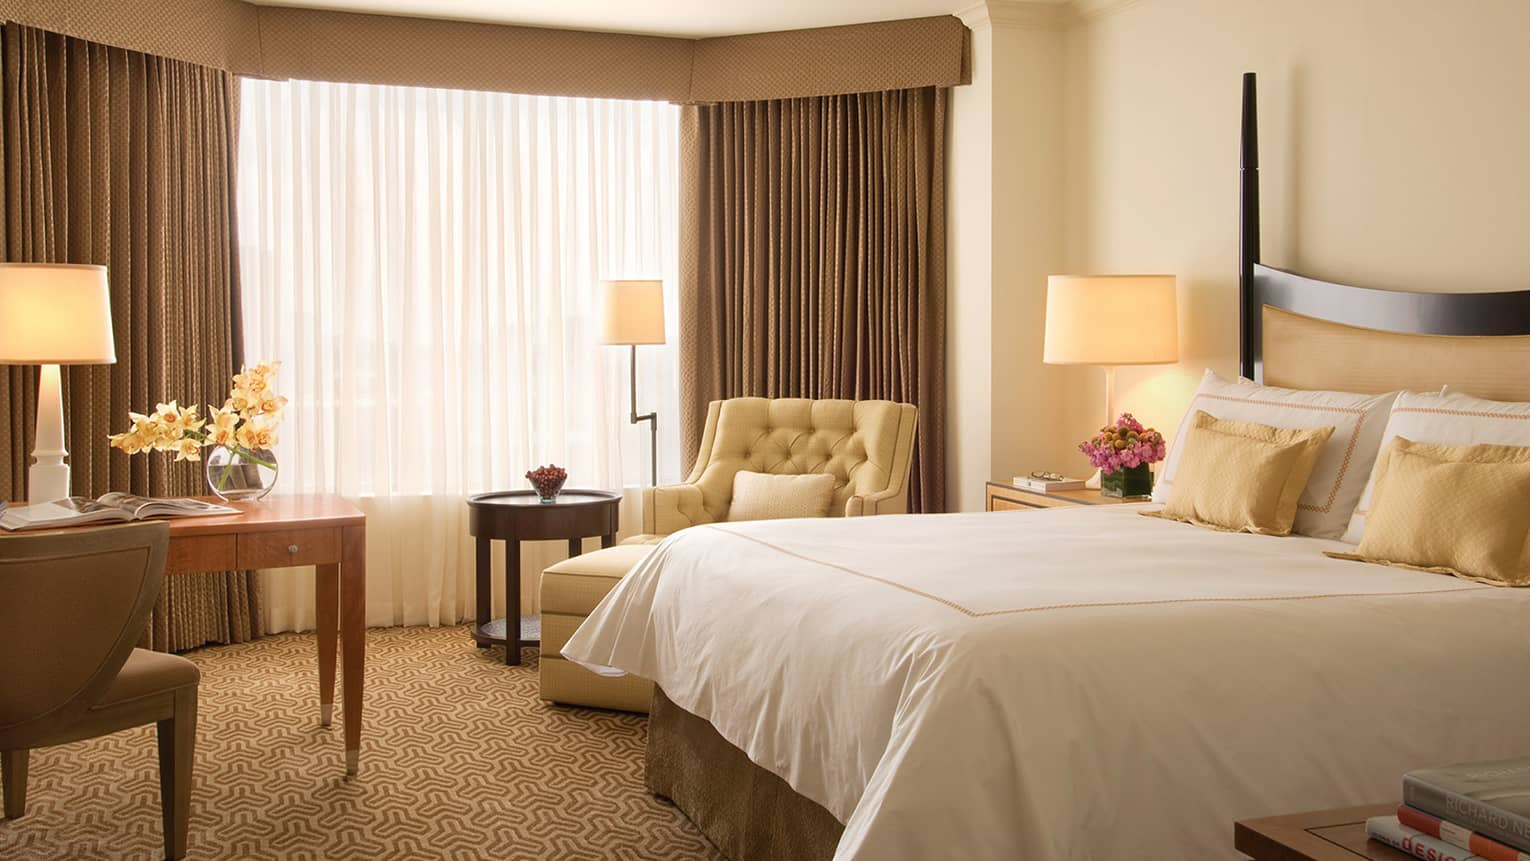 Deluxe guest room with cream tones, bed with padded headboard, beige armchair by window